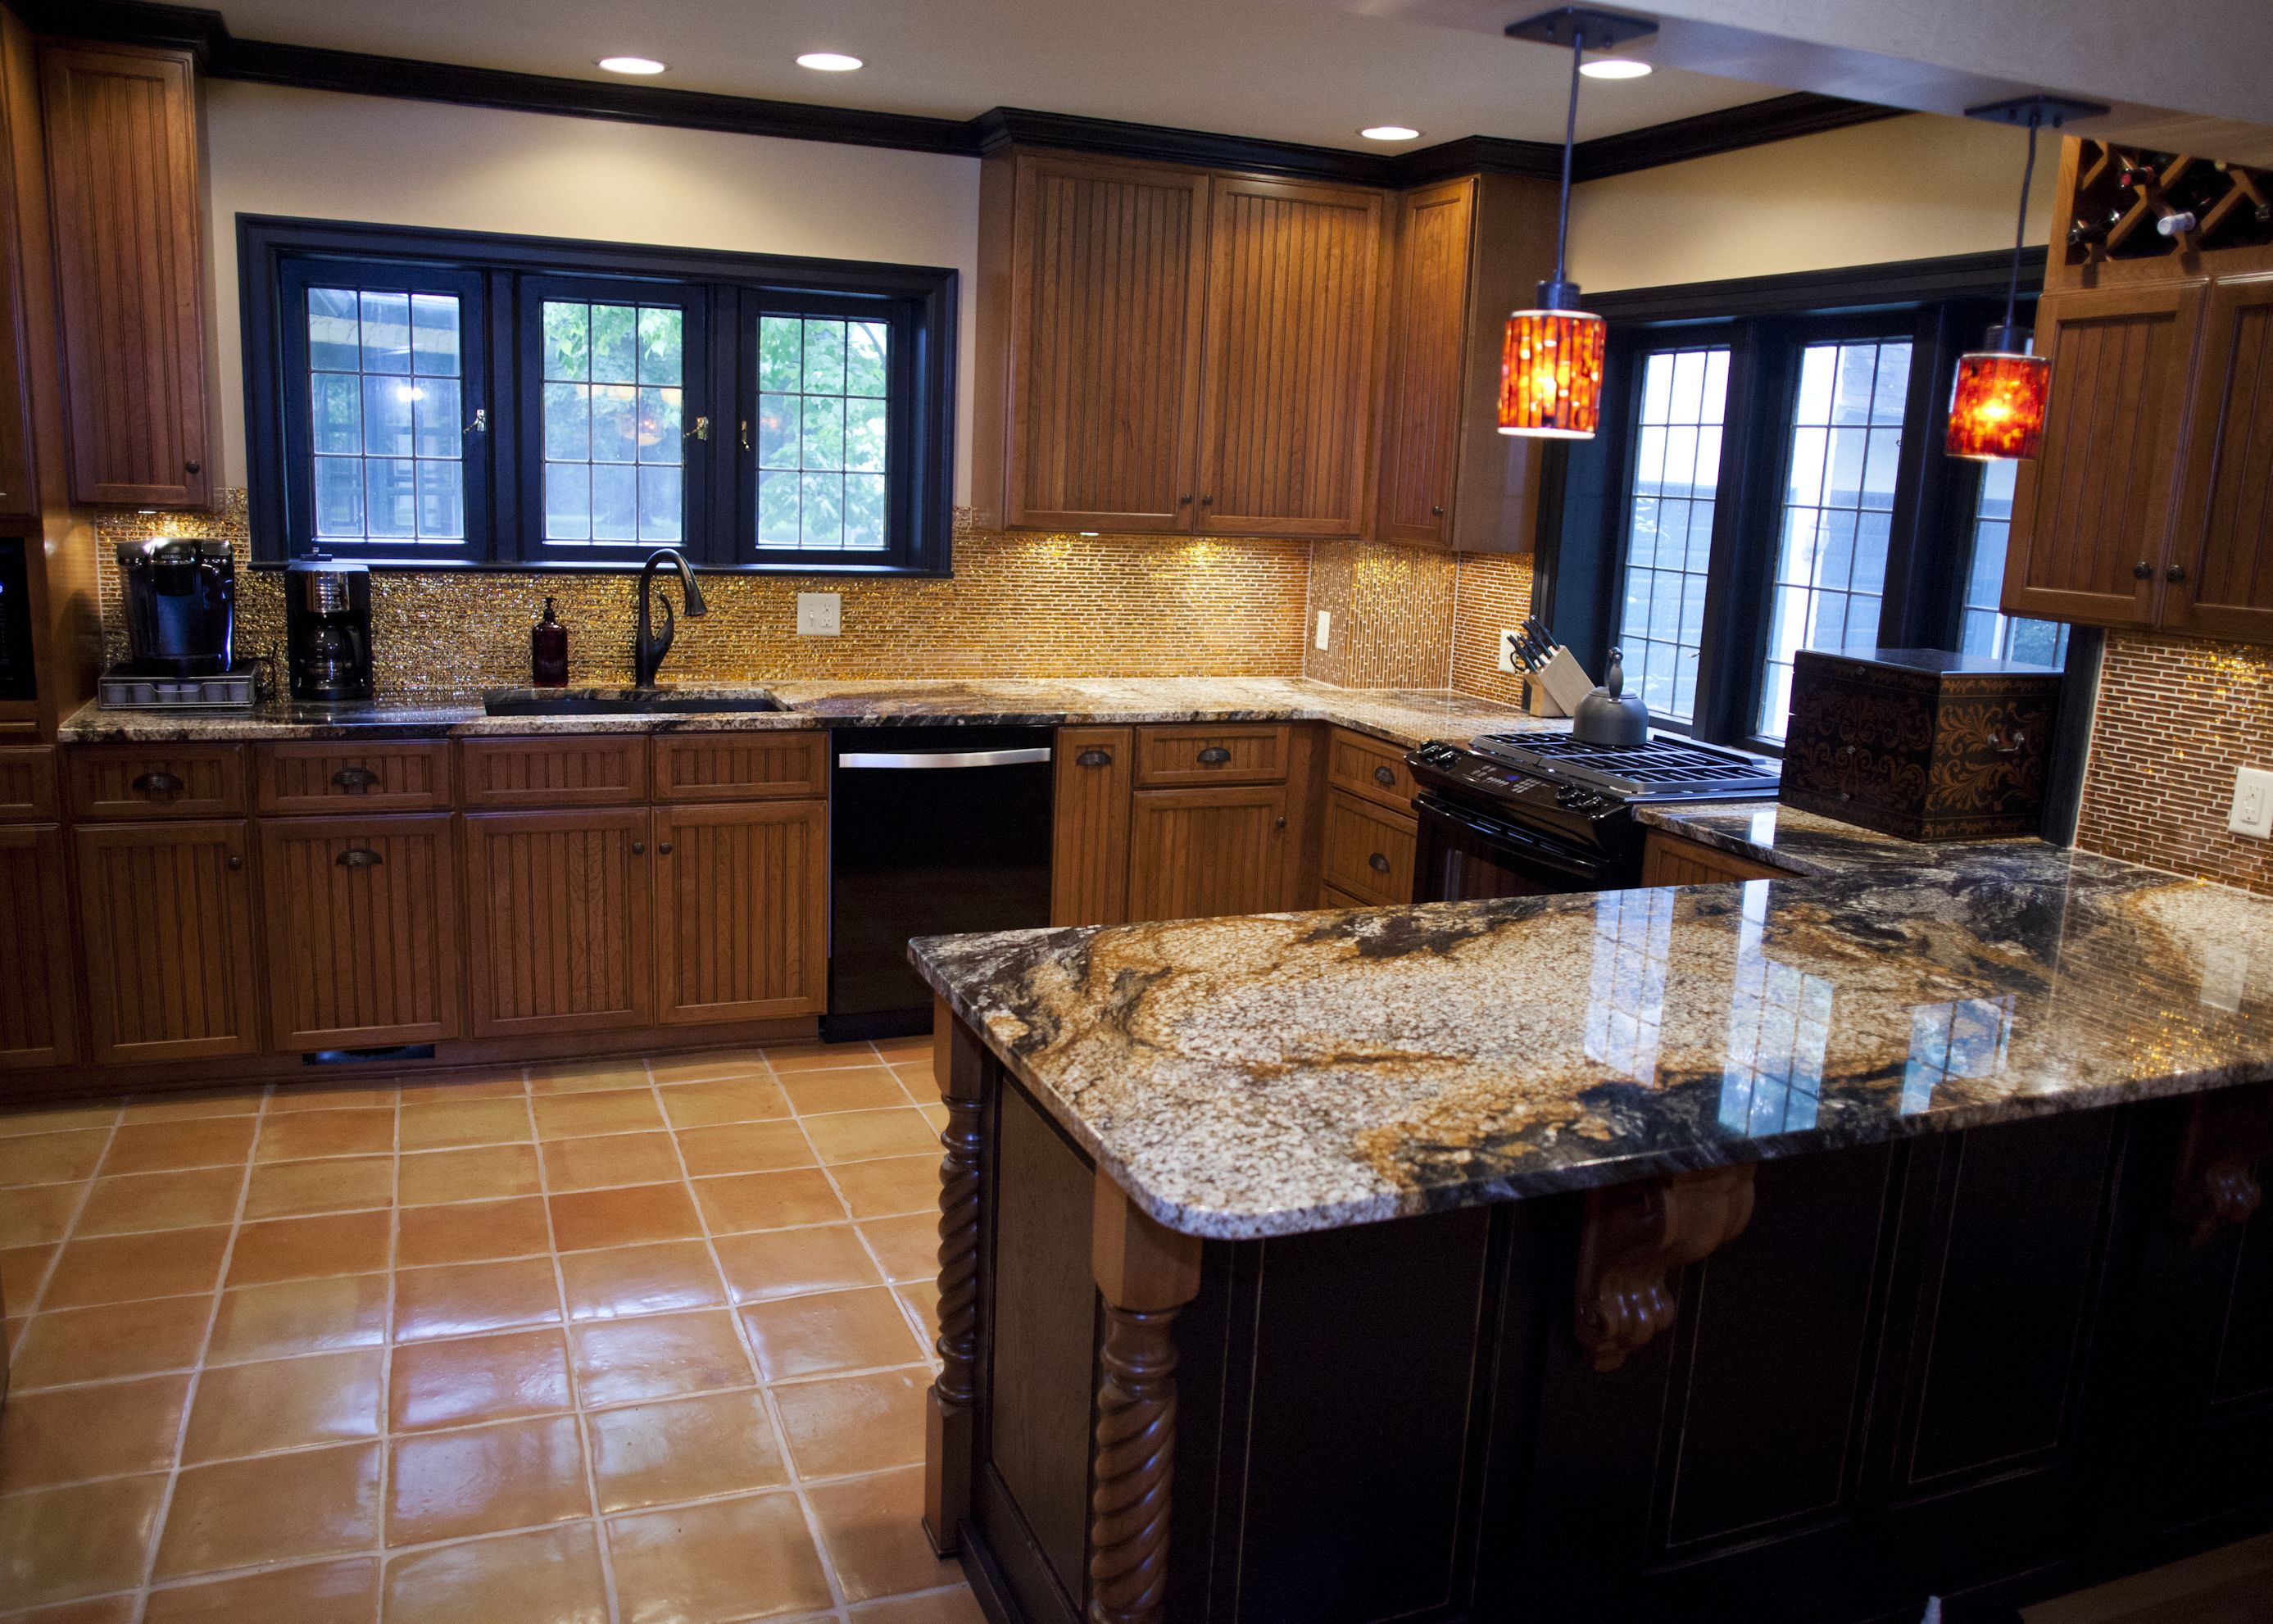 Two Toned Kitchen Cabinets Feature Pennington Door Style In Cherry With  Rustic Pebble Finish.